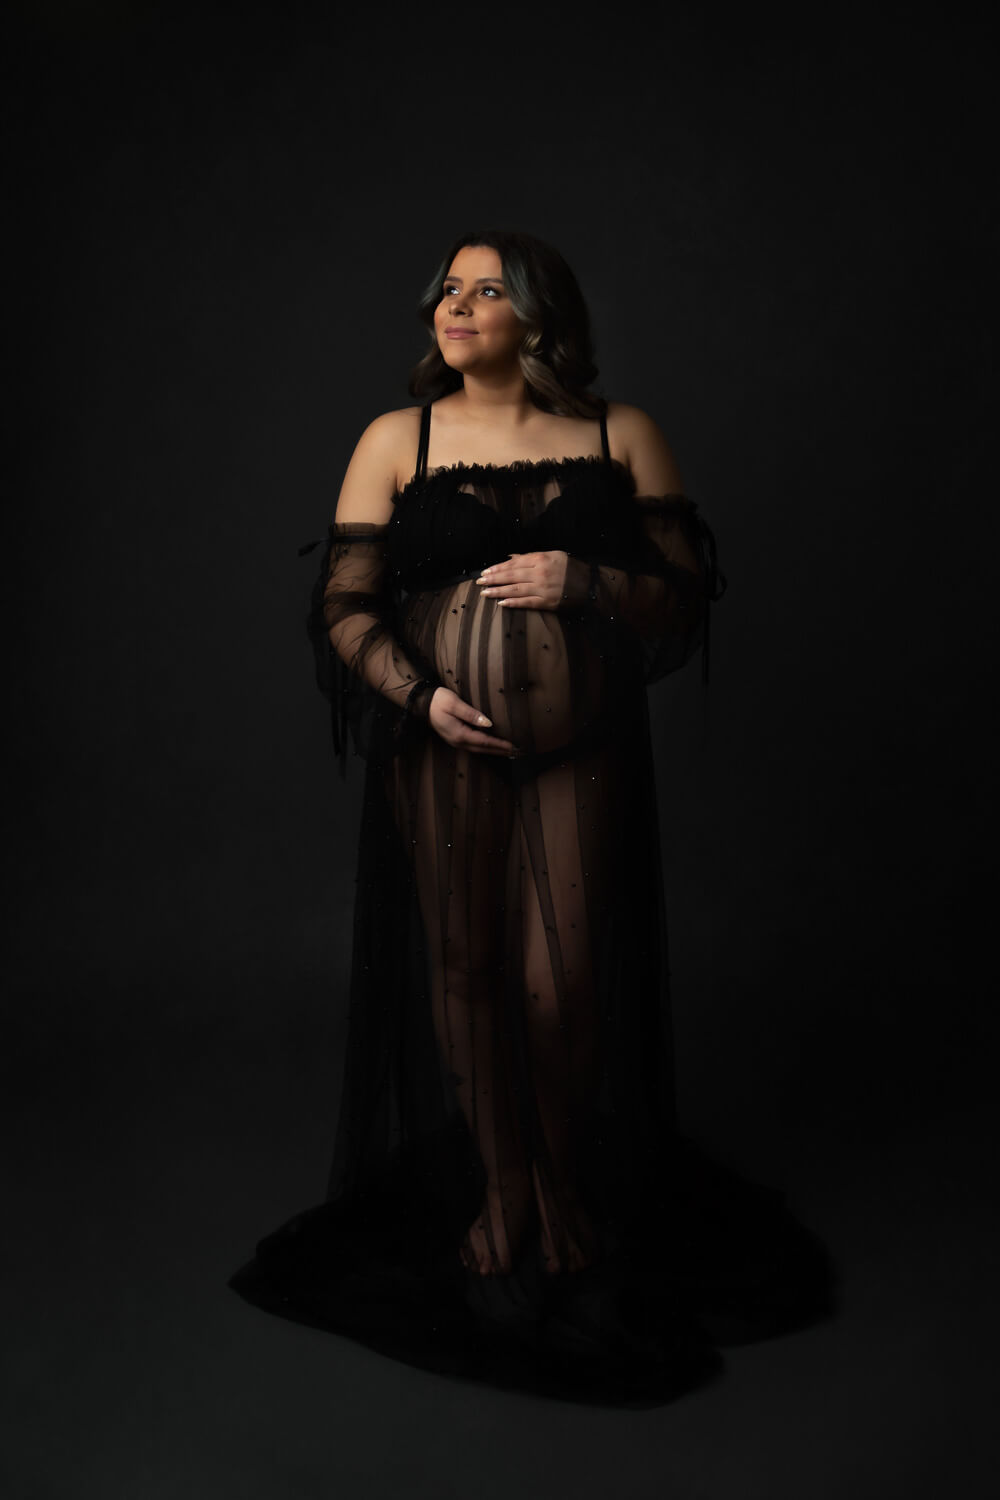 pregnant woman posing for maternity photo in gown